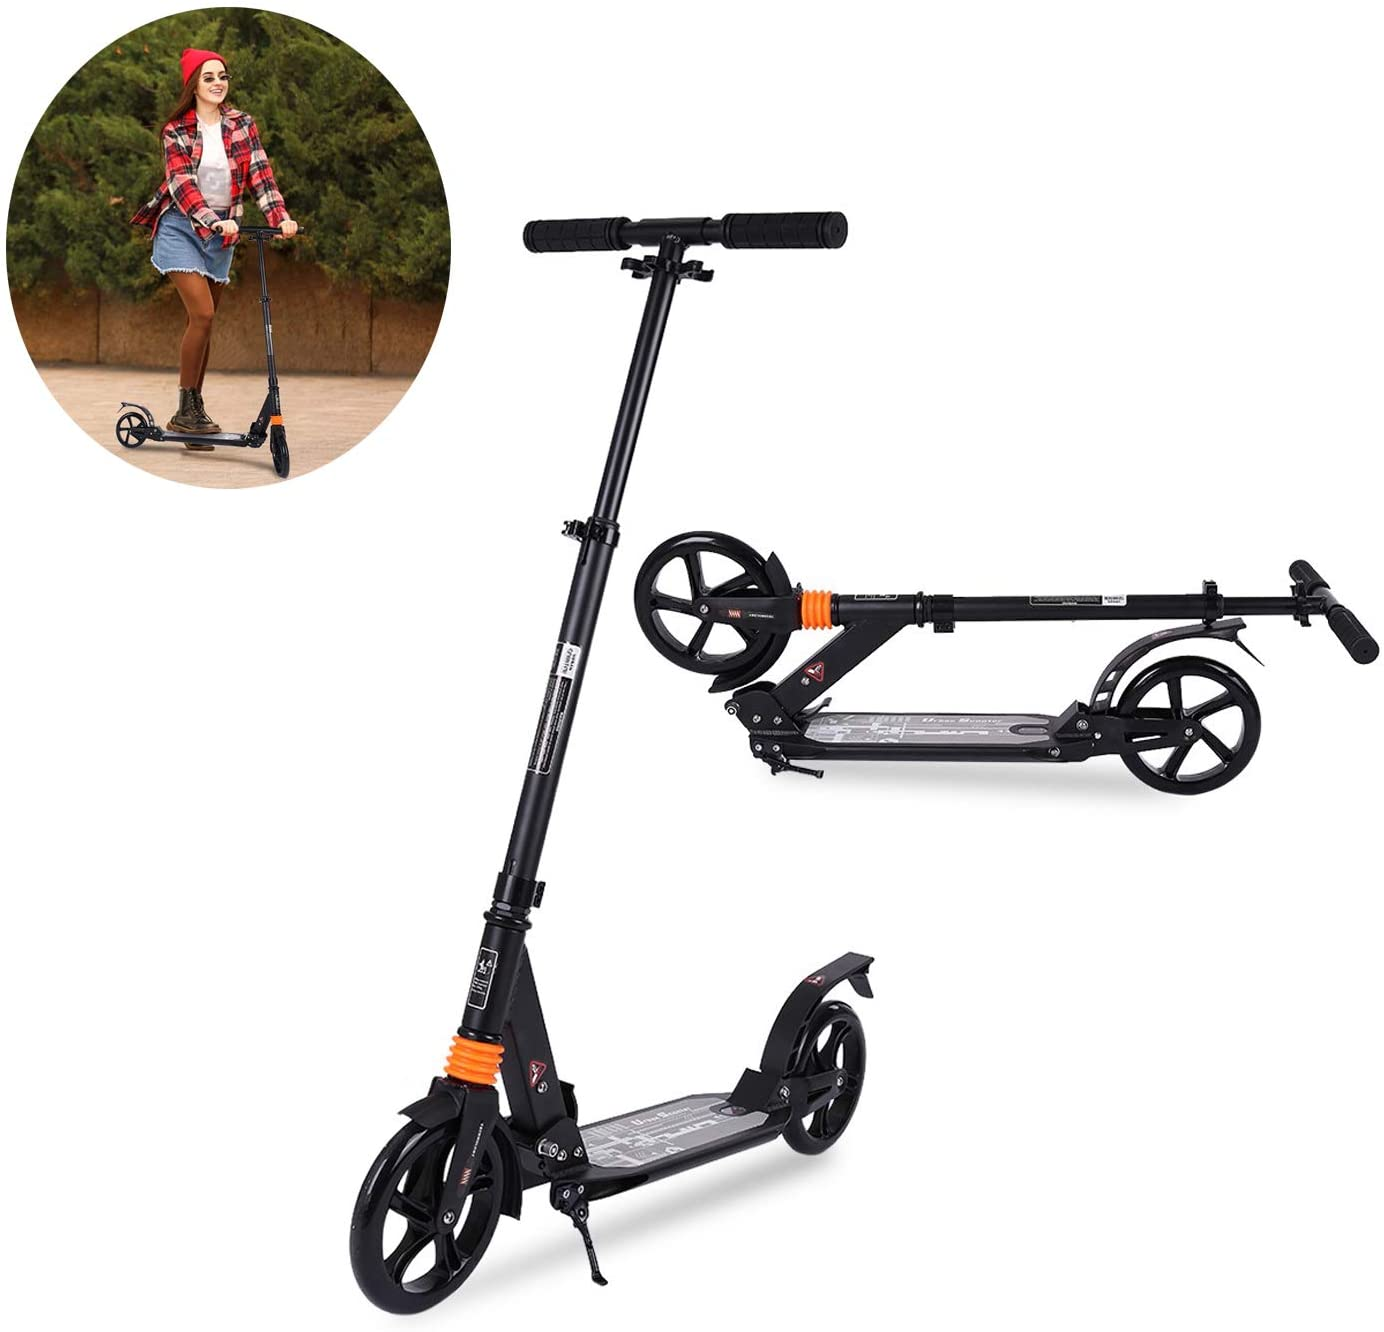 【US Spot】 Scooter, Height Adjustable and Oversized Wheels, Youth Folding Scooter,Kick Scooter for Adults, Teens - Foldable, Students, Office Workers, Urban Enviroments, and Near Commuting